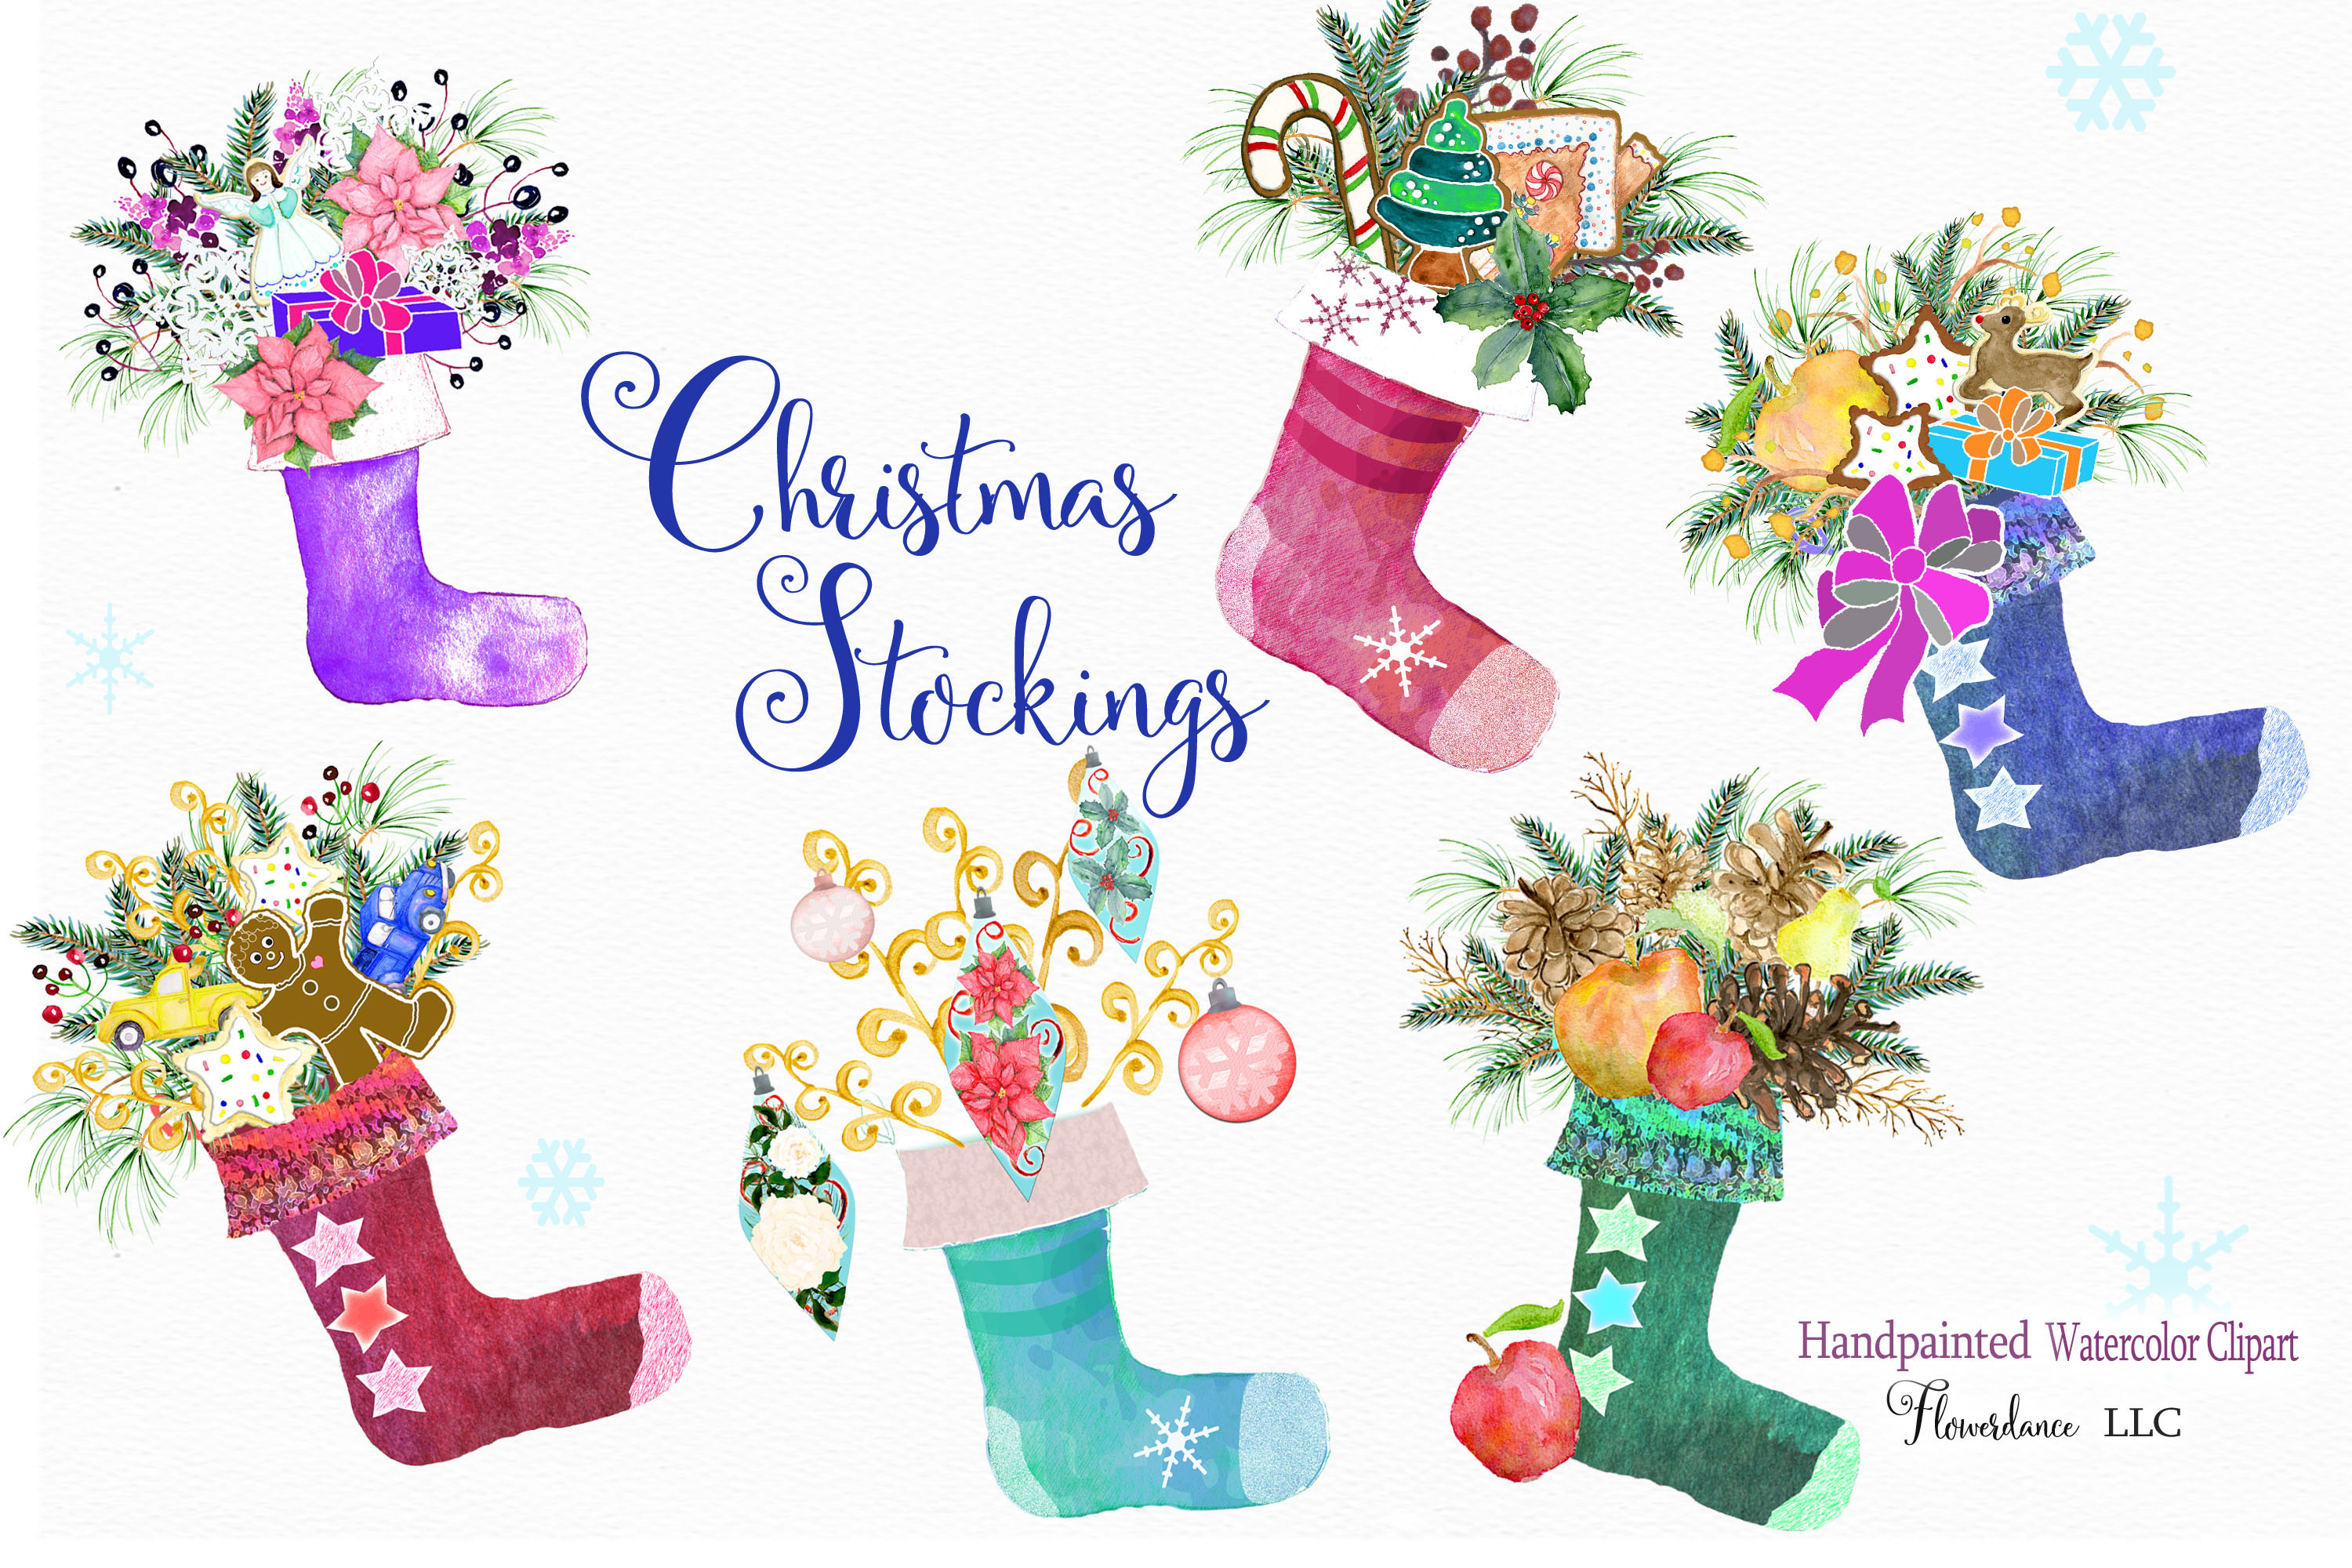 Watercolor Clipart Christmas Stockings with Gifts.